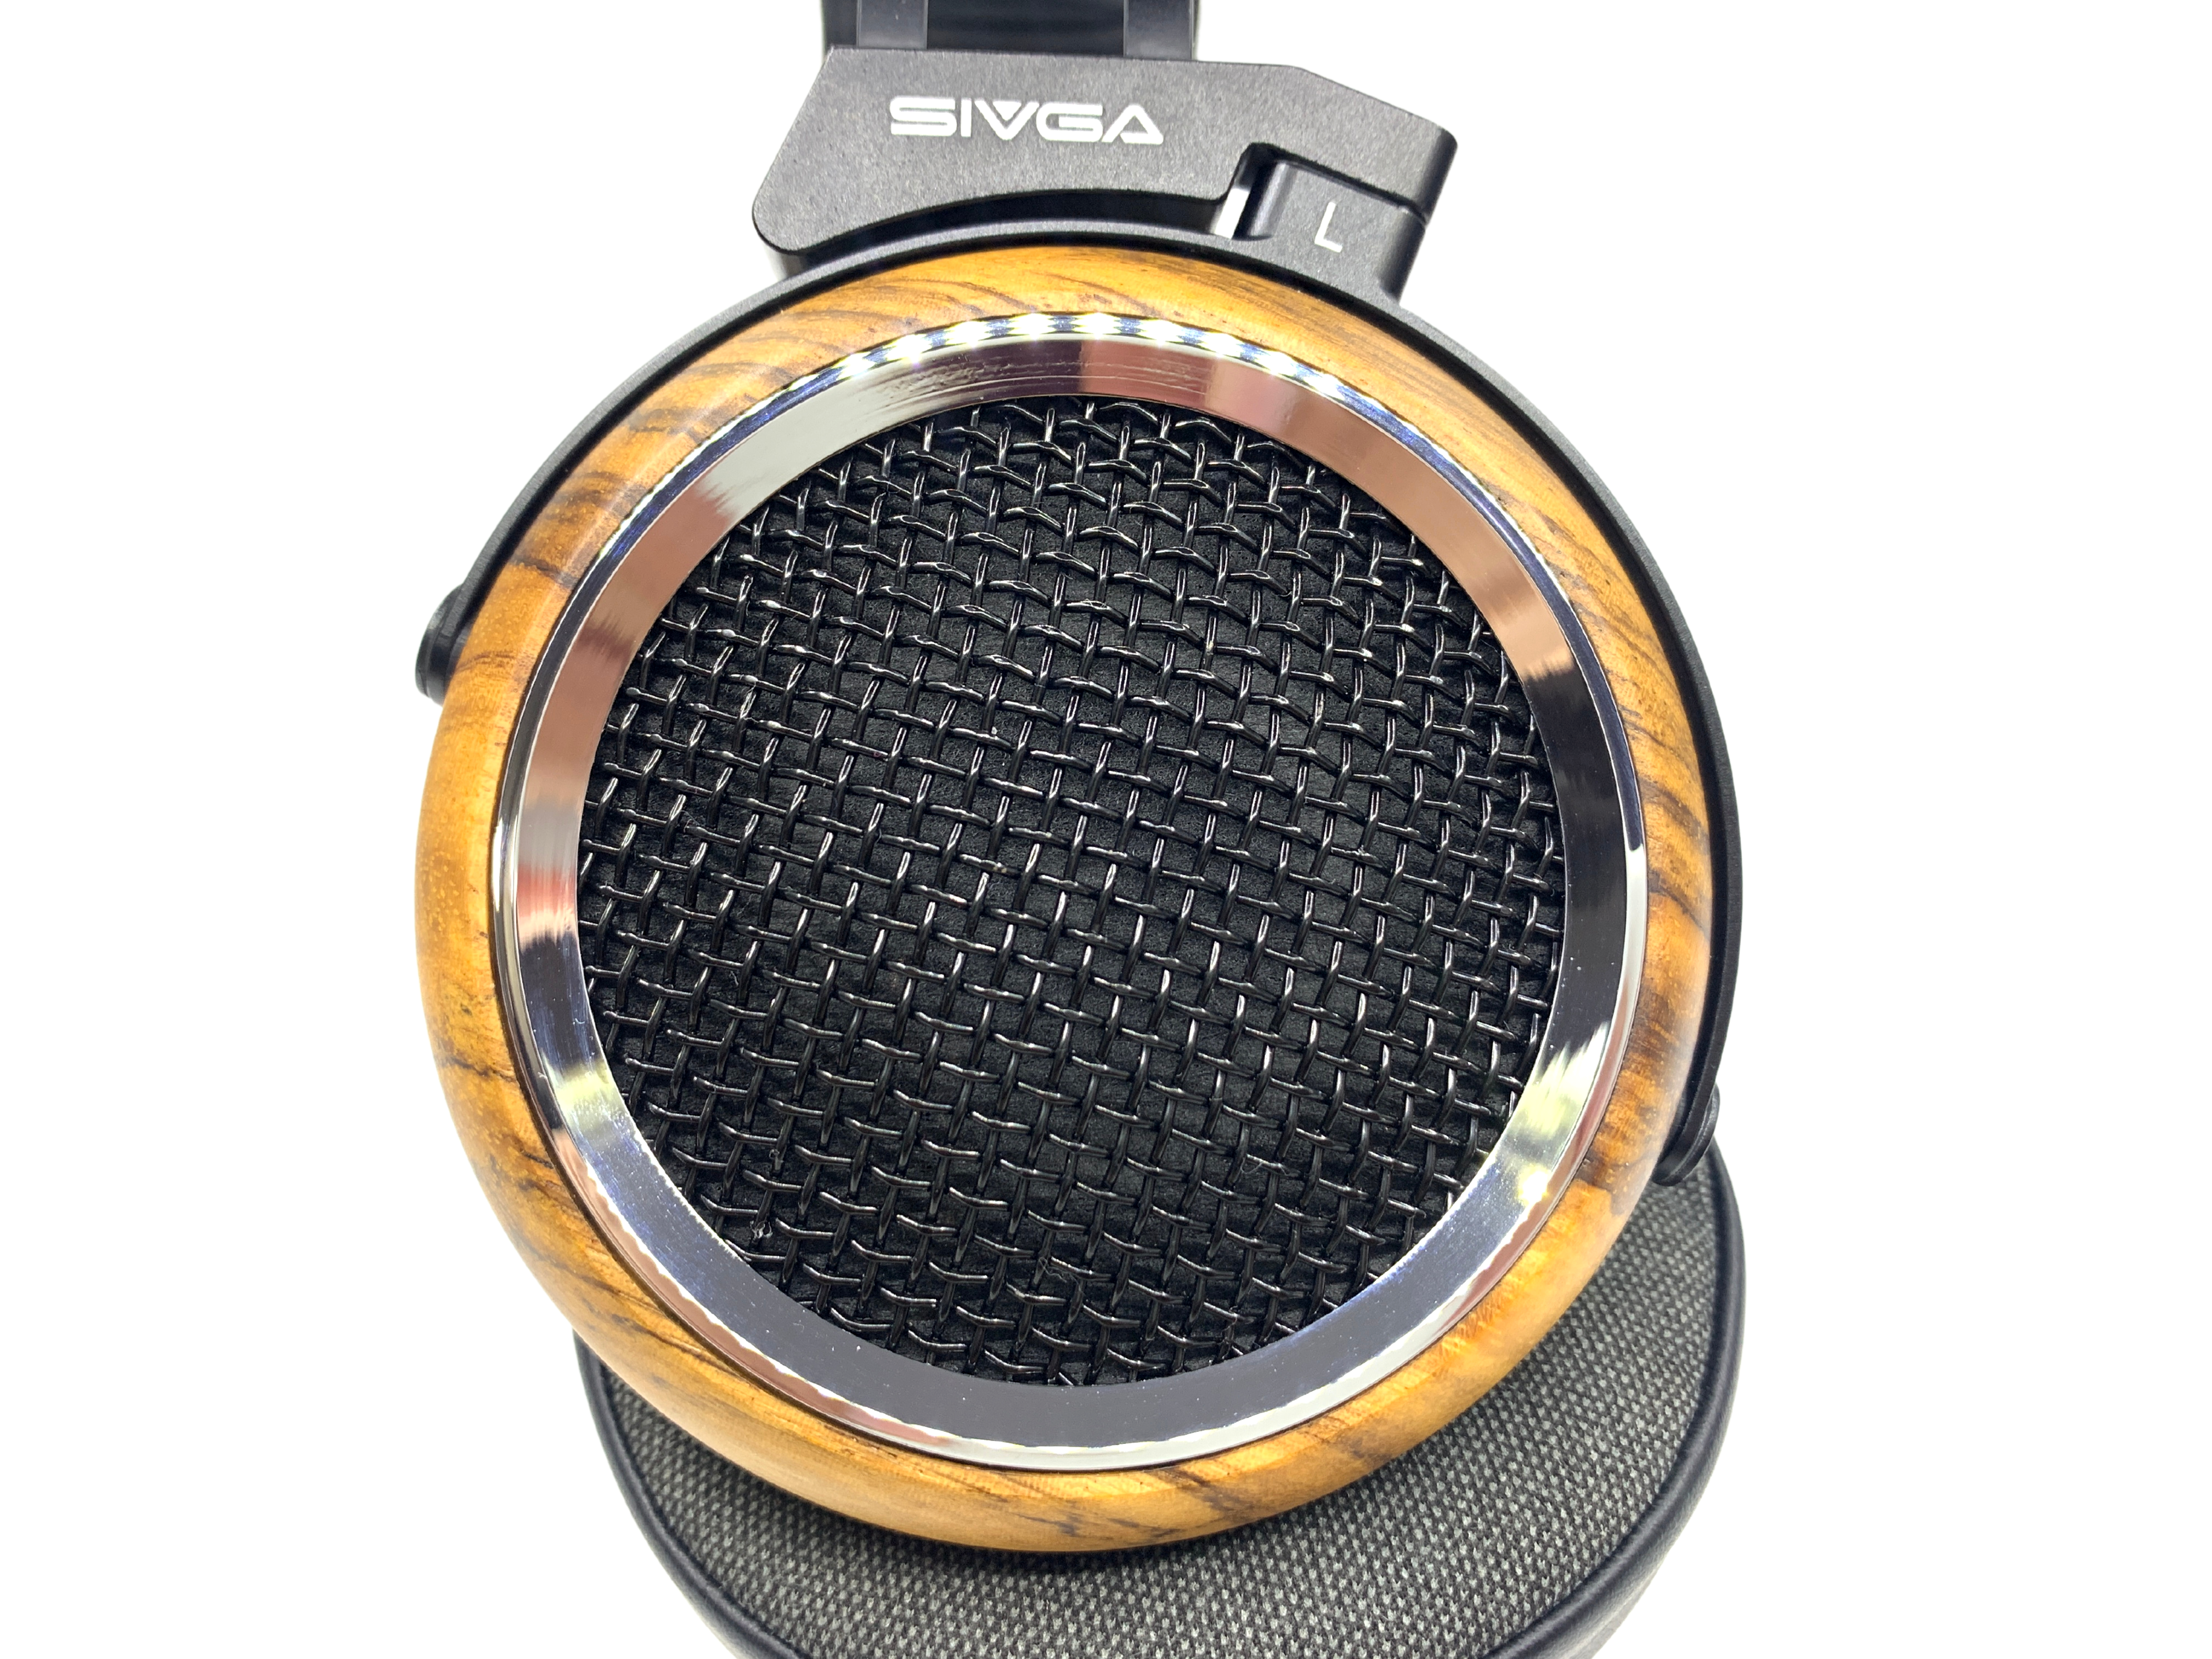 The grille is made of stainless steel with a layer of black lacquer coating while the zebra wood ear cups are well-processed by a CNC machine.